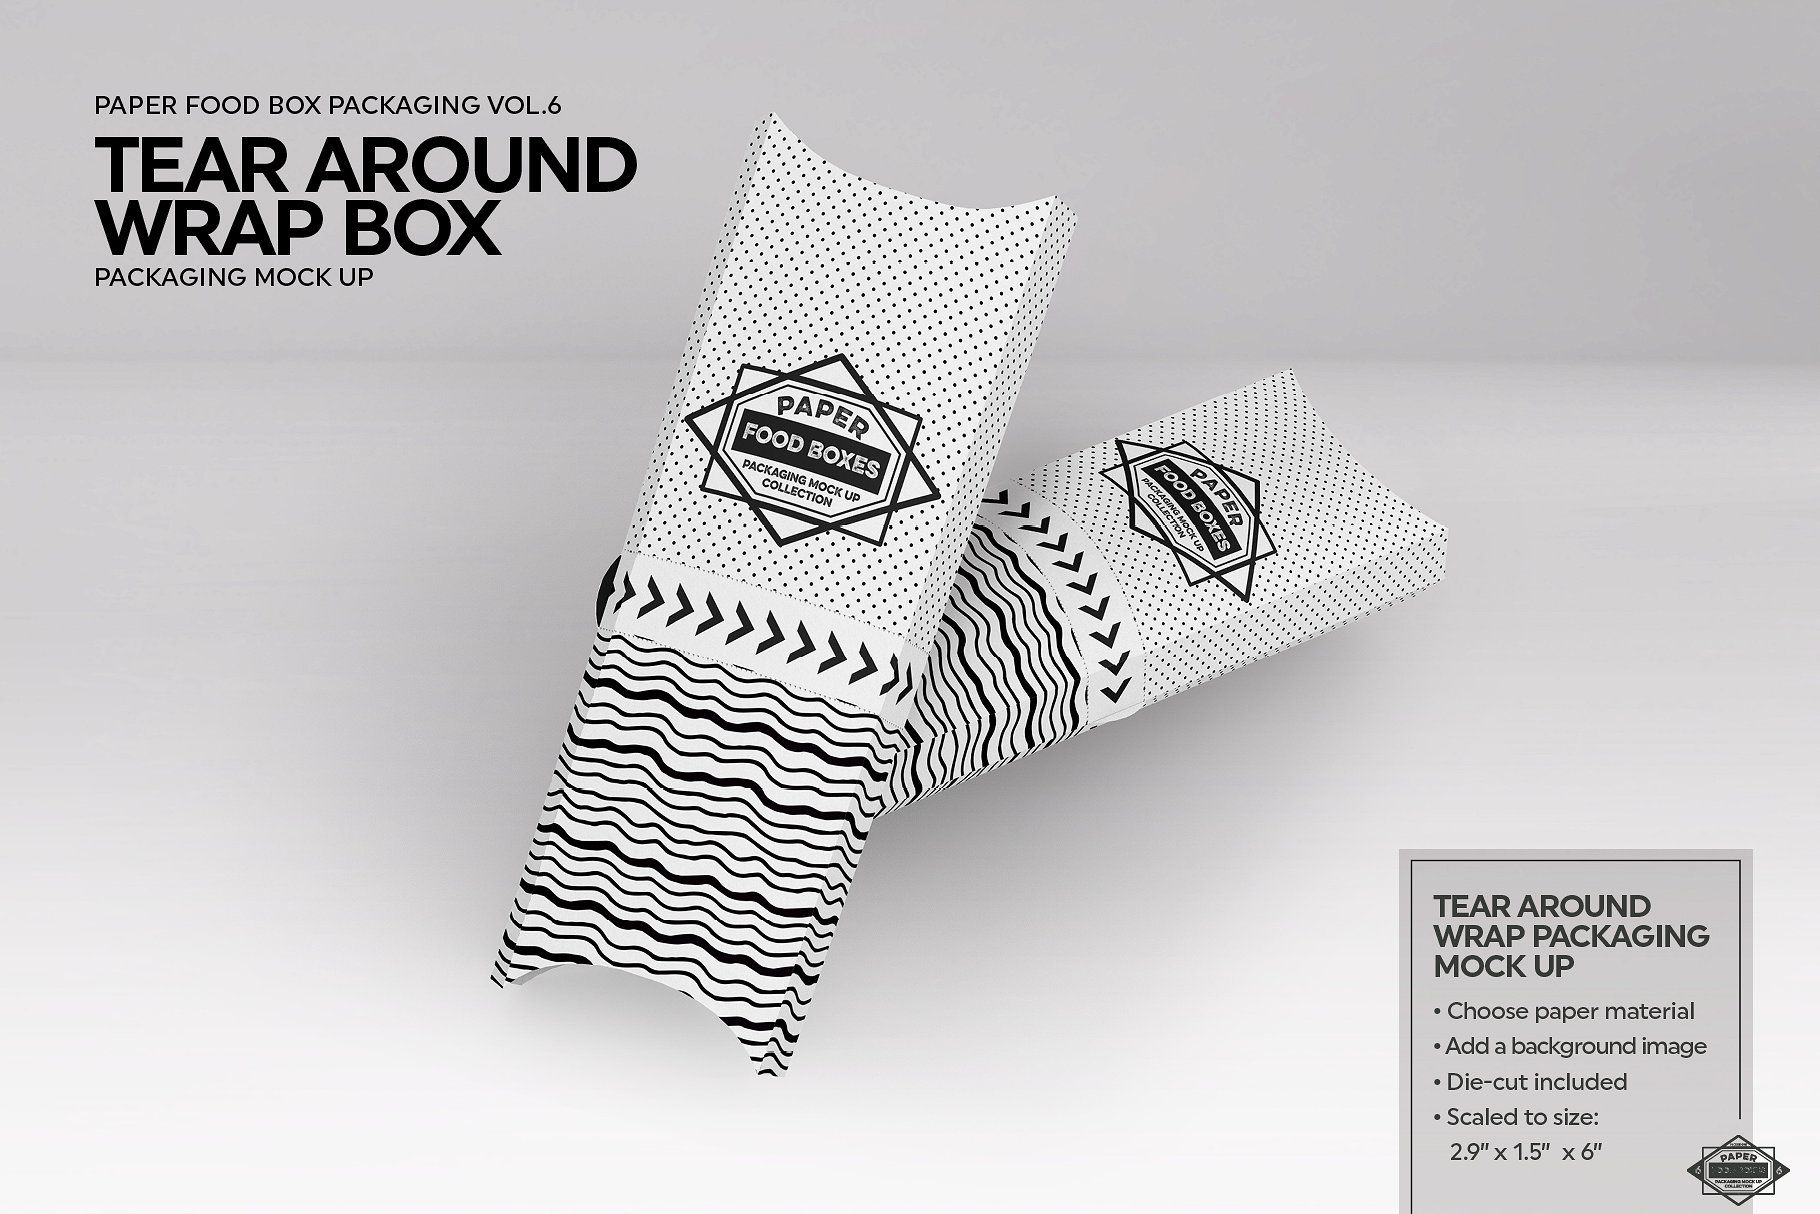 Download Tear Around Wrap Packaging Mockup Packaging Mockup Free Packaging Mockup Food Box Packaging